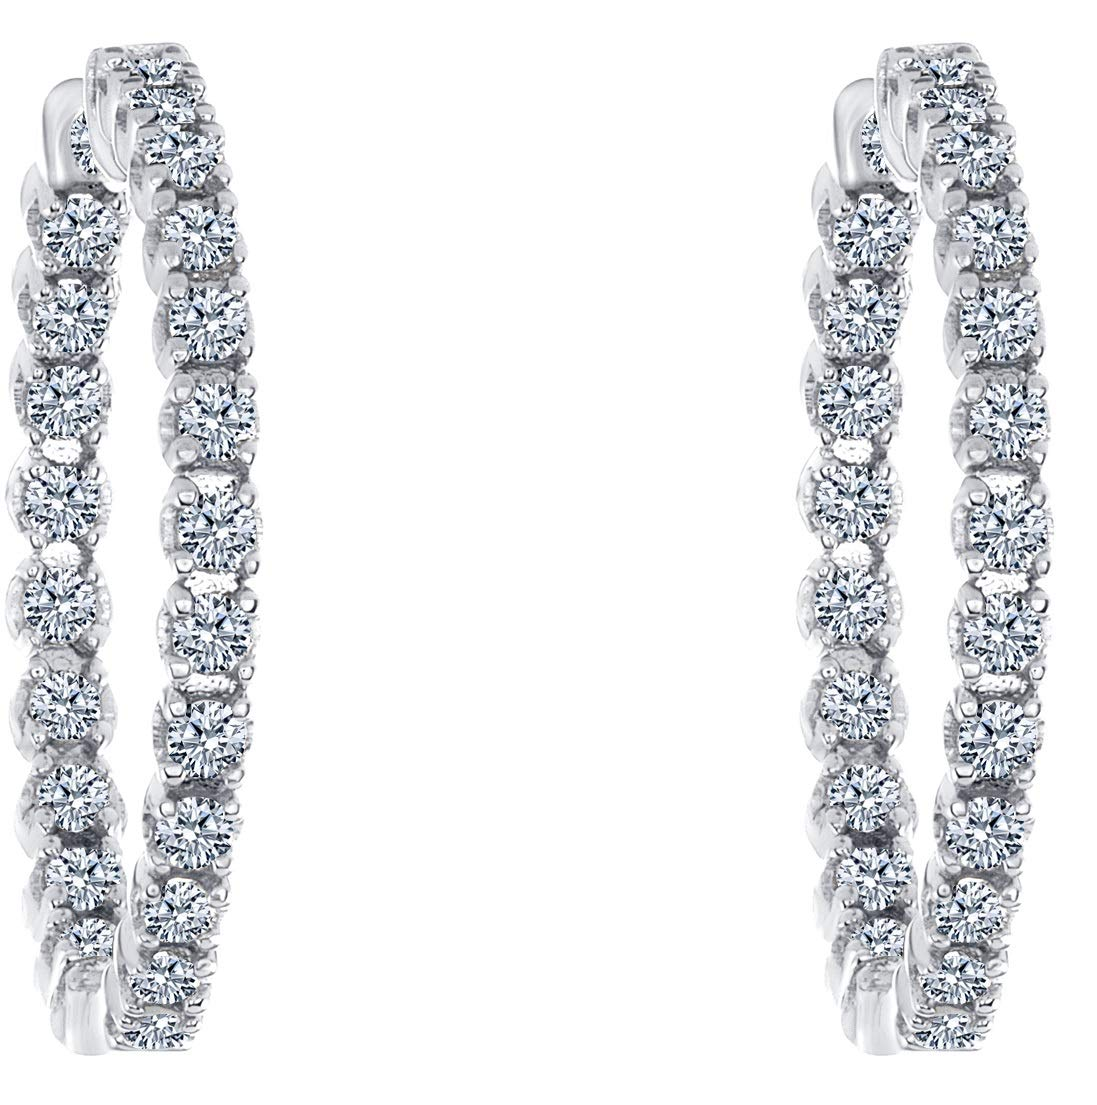 Beverly Hills Jewelers 1.00 Carat T.w. Beautiful Inside-Out Hoop Earring Top Shine, Real Natural White Diamond, Round Brilliant Cut, Set in White Gold, Secure Clasp Lock